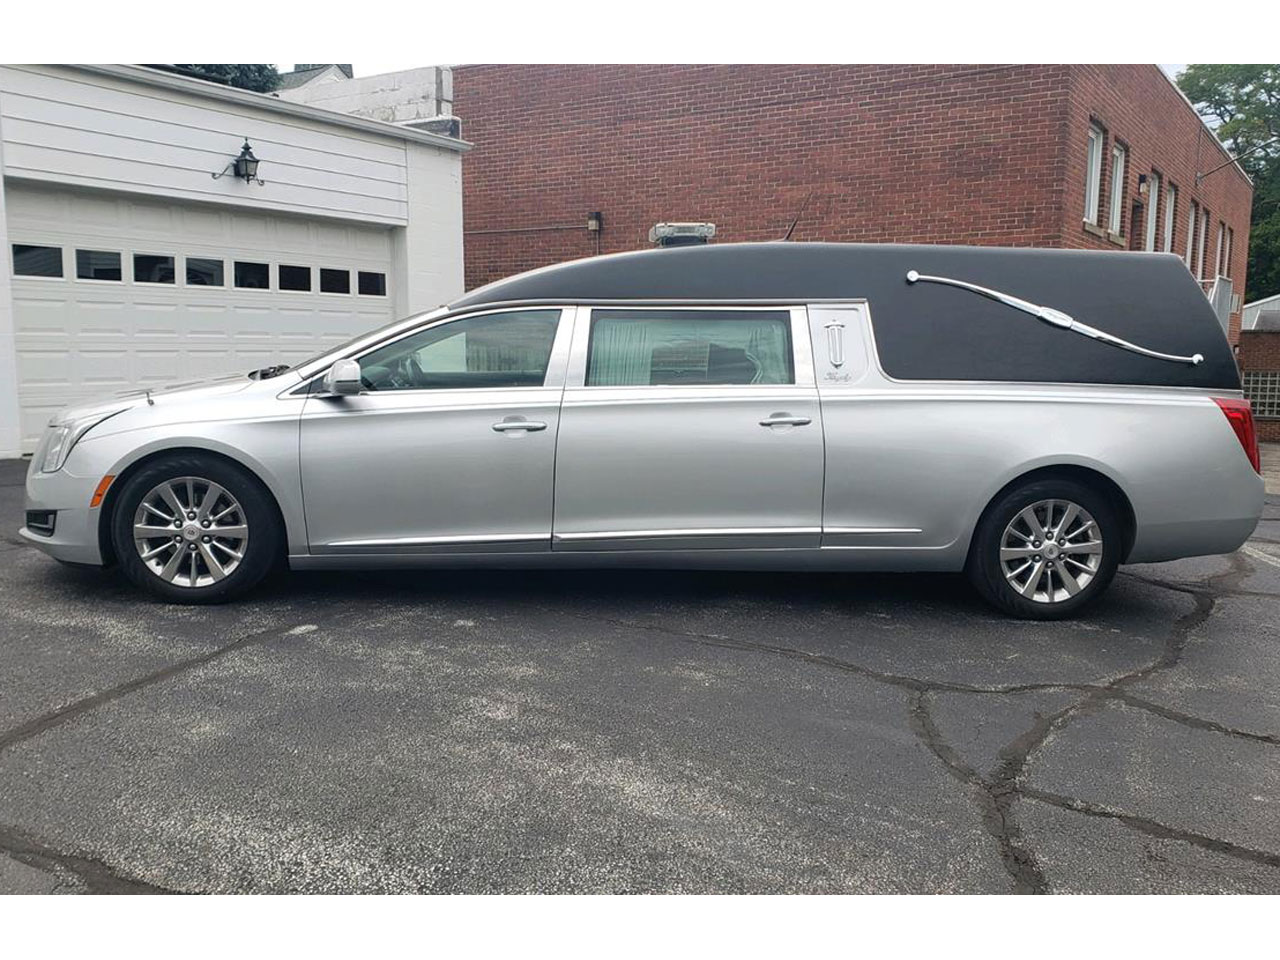 2014 Cadillac Eagle Kingsley Hearse